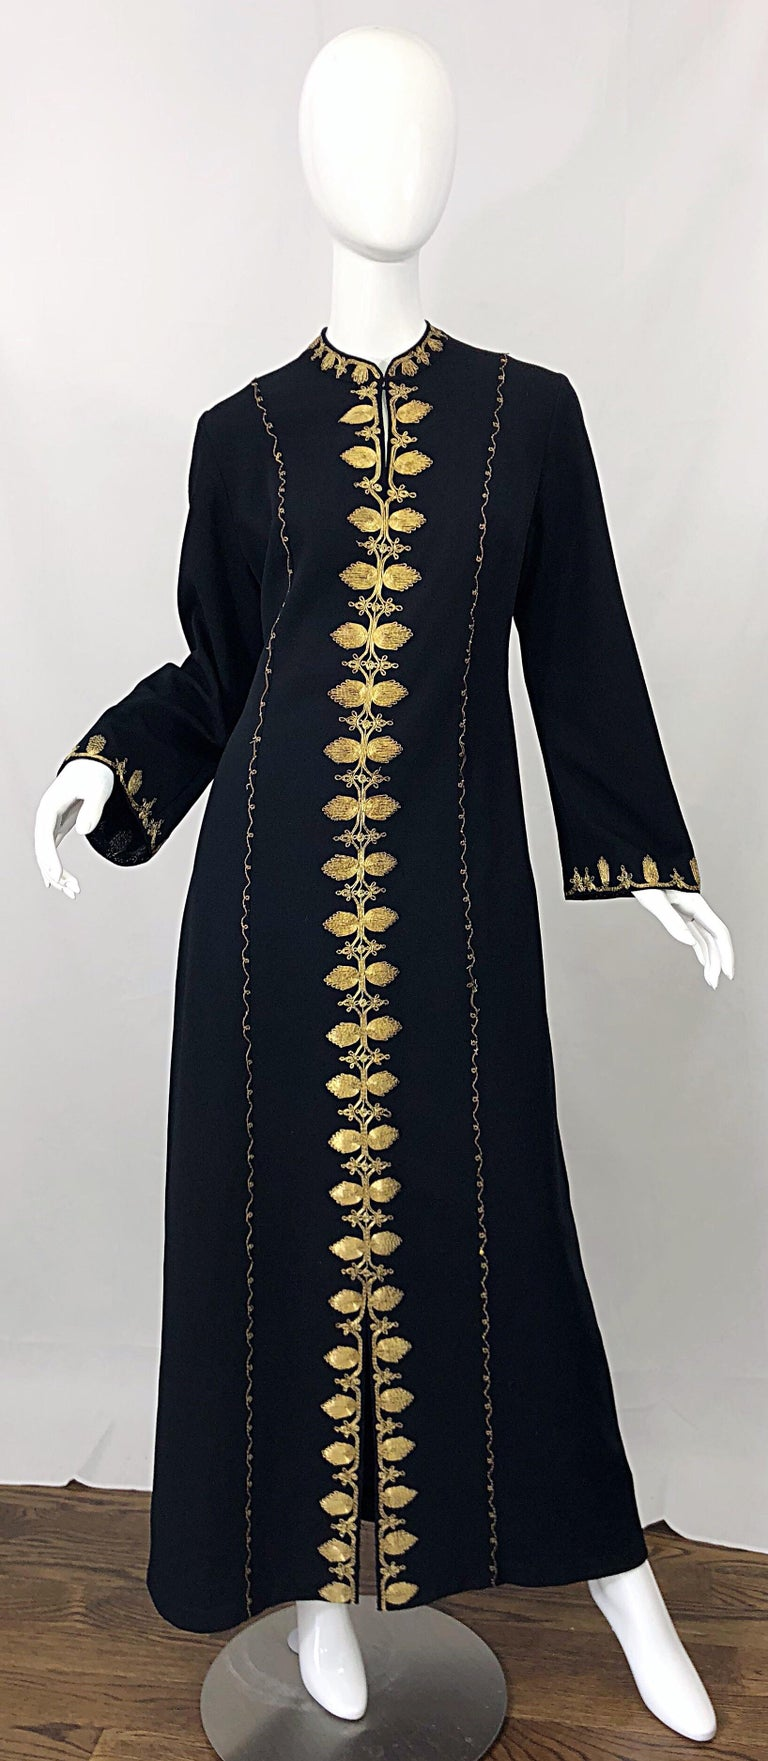 Amazing 1970s black crepe Moroccan long sleeve kaftan maxi dress! Features meticulously embrodiered gold metal throughout. Chic bell /angel sleeved have just the right amount of flare. Hook-and-eye closure at top neck creates a keyhole affect, or